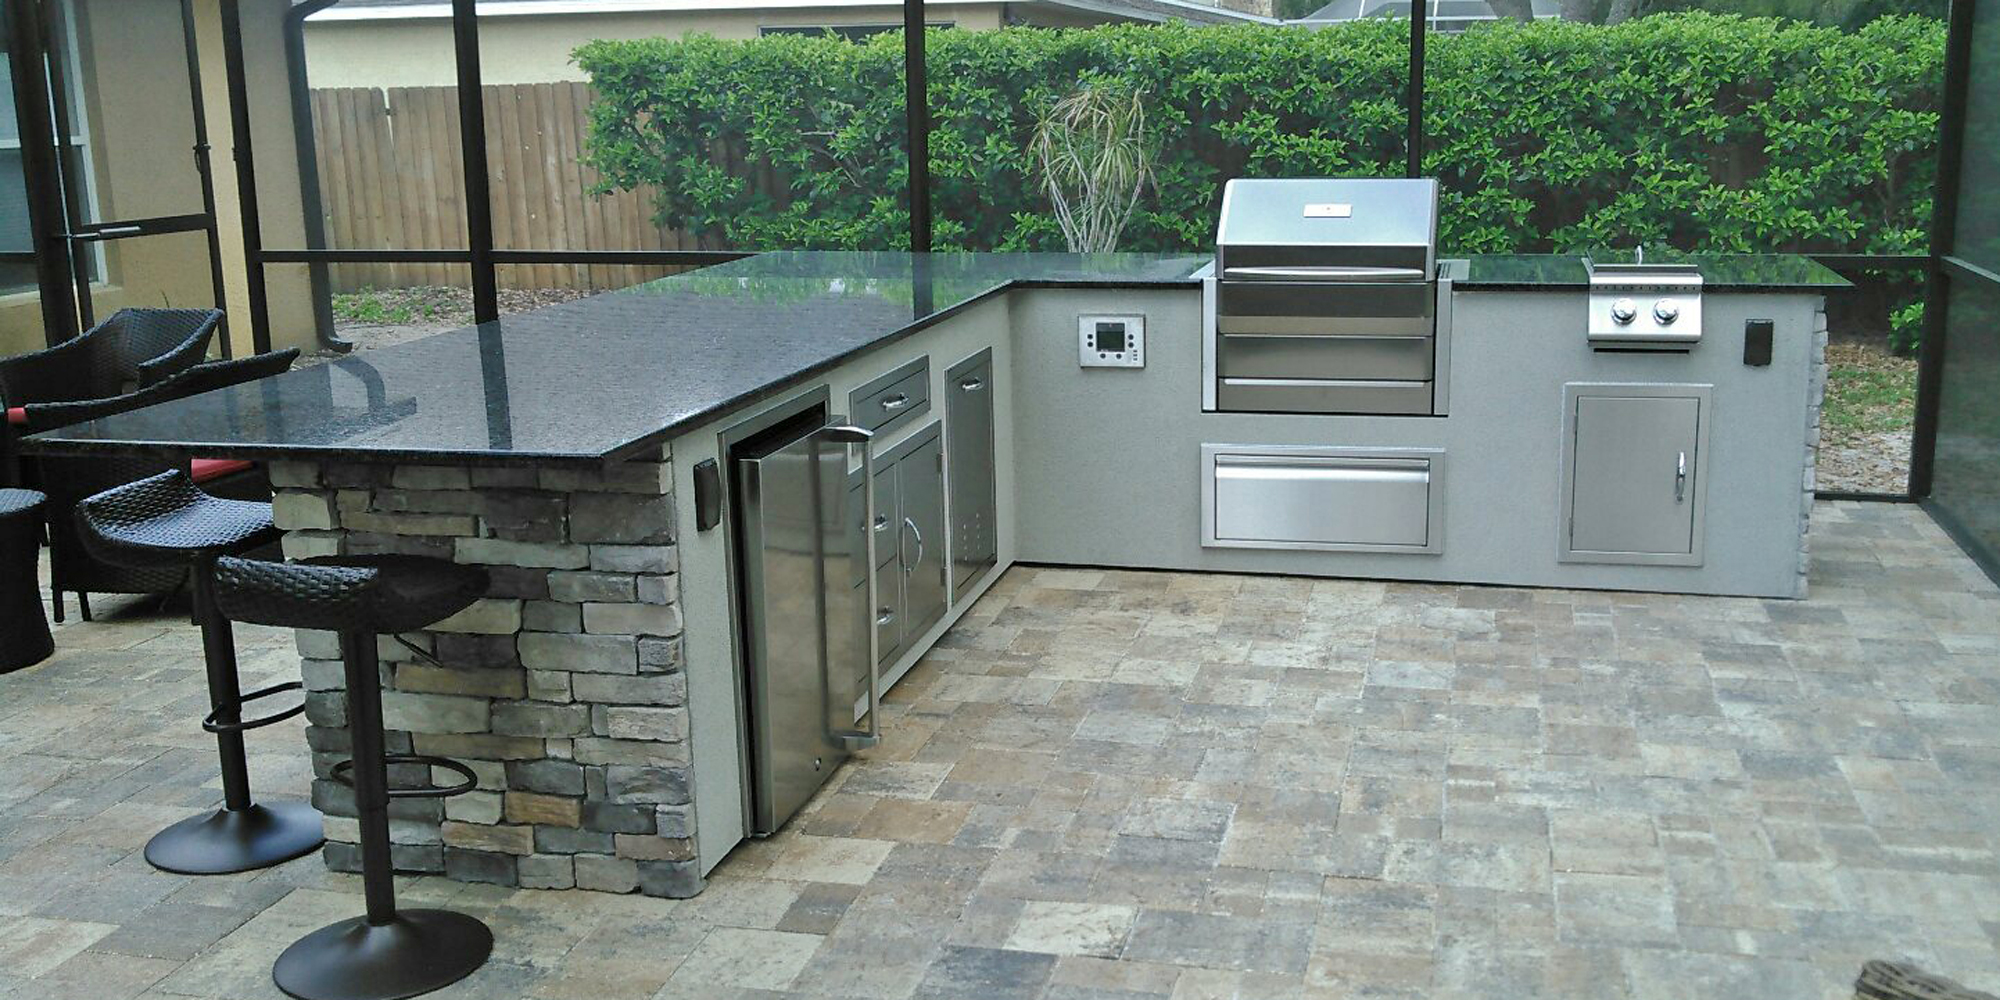 Dryvit-with-Stacked-Stone-Outdoor-Kitchen_Memphis-Wood-Pellet-Grill.jpg